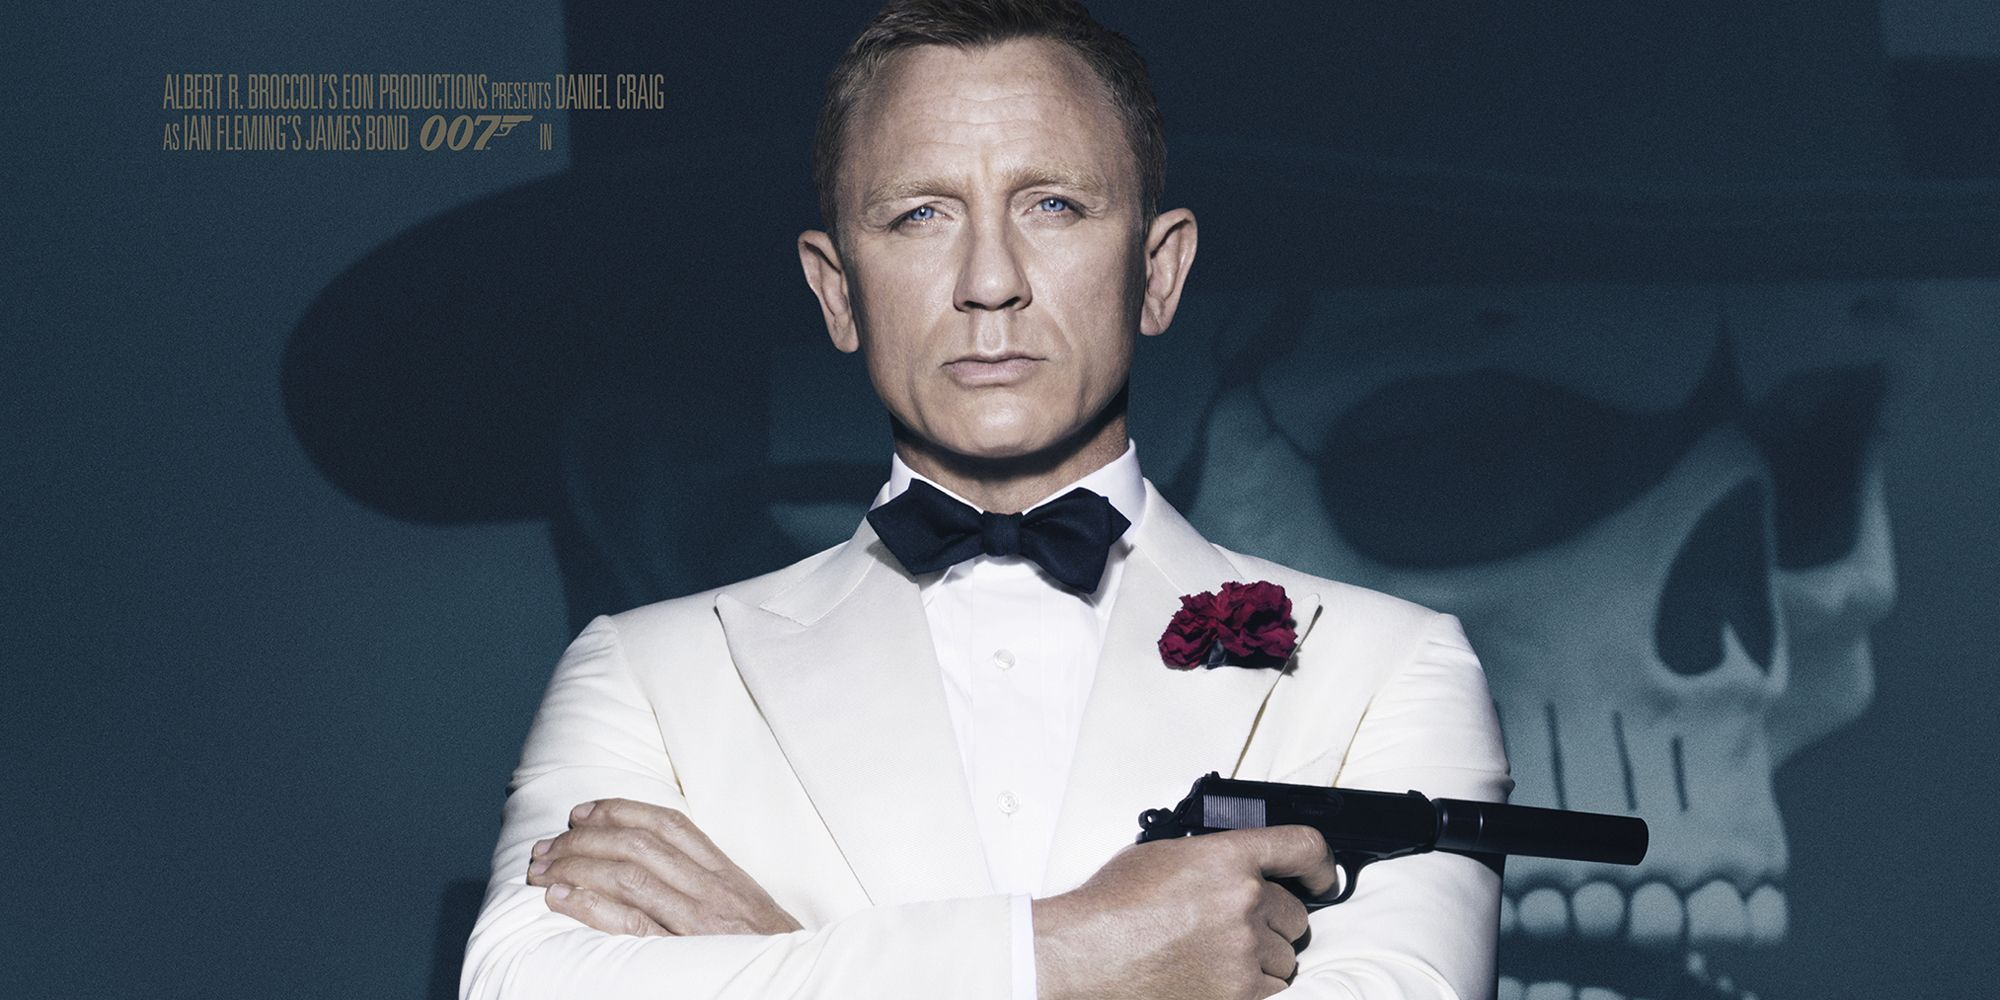 New Spectre Poster Shows James Bond In A White Dinner Jacket